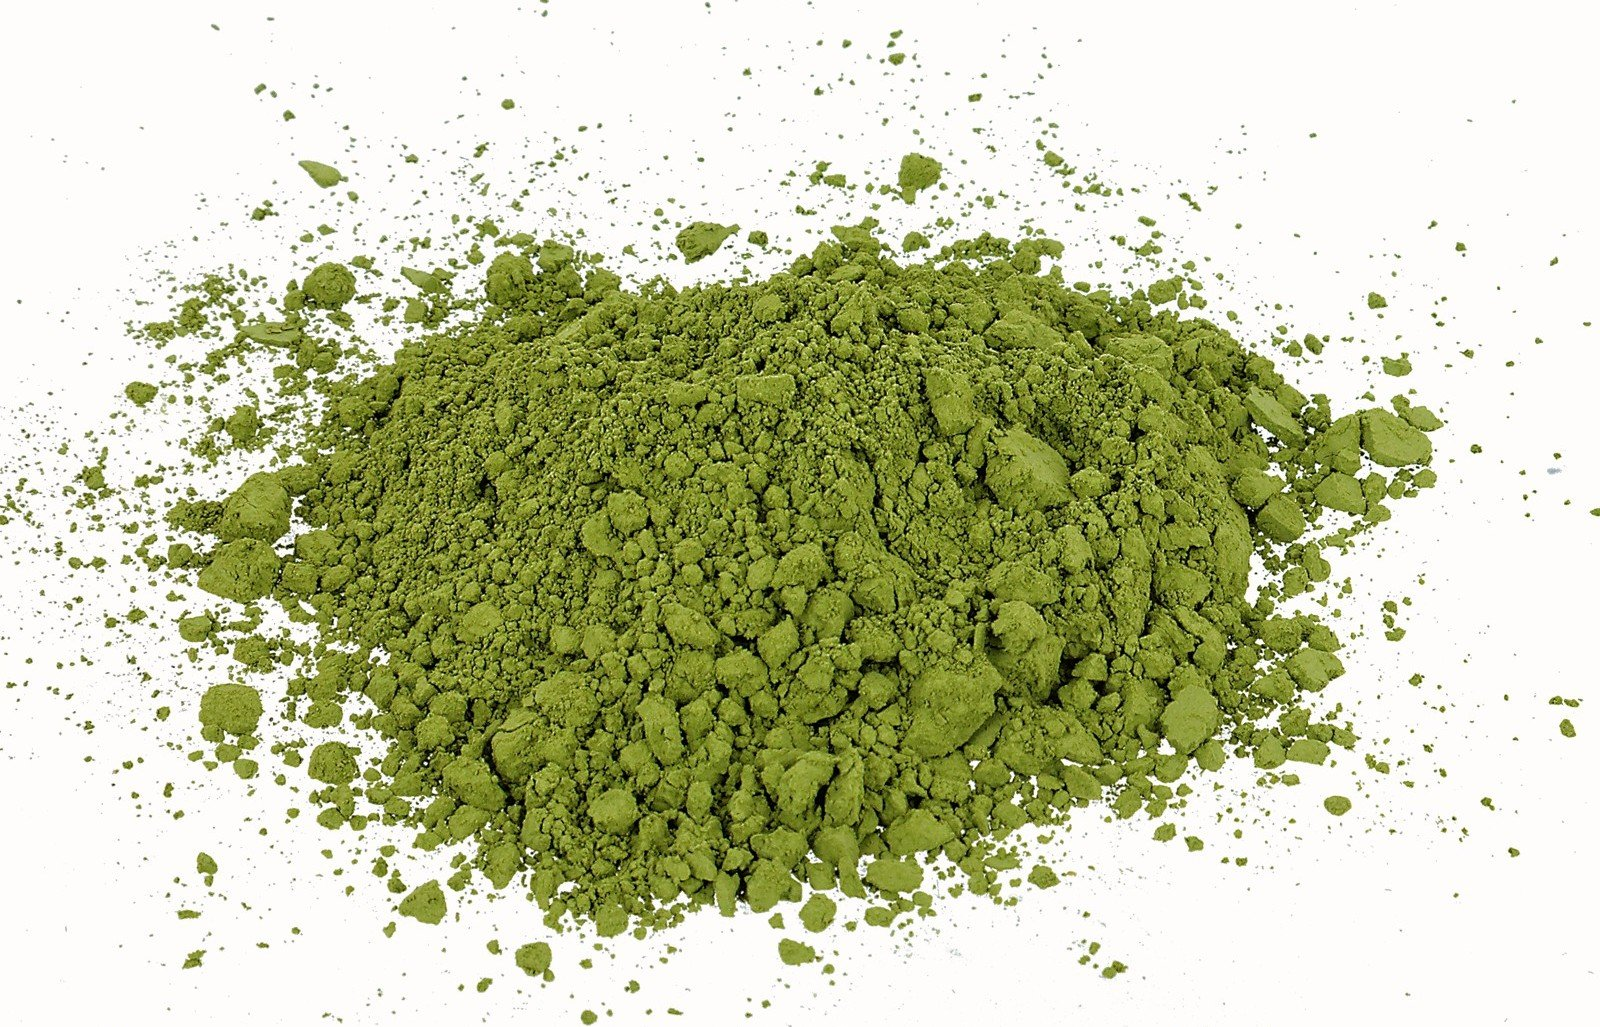 BIO-Matcha-Tee-Pulver-Premium-for-Cooking-aus-Japan-von-Azafran